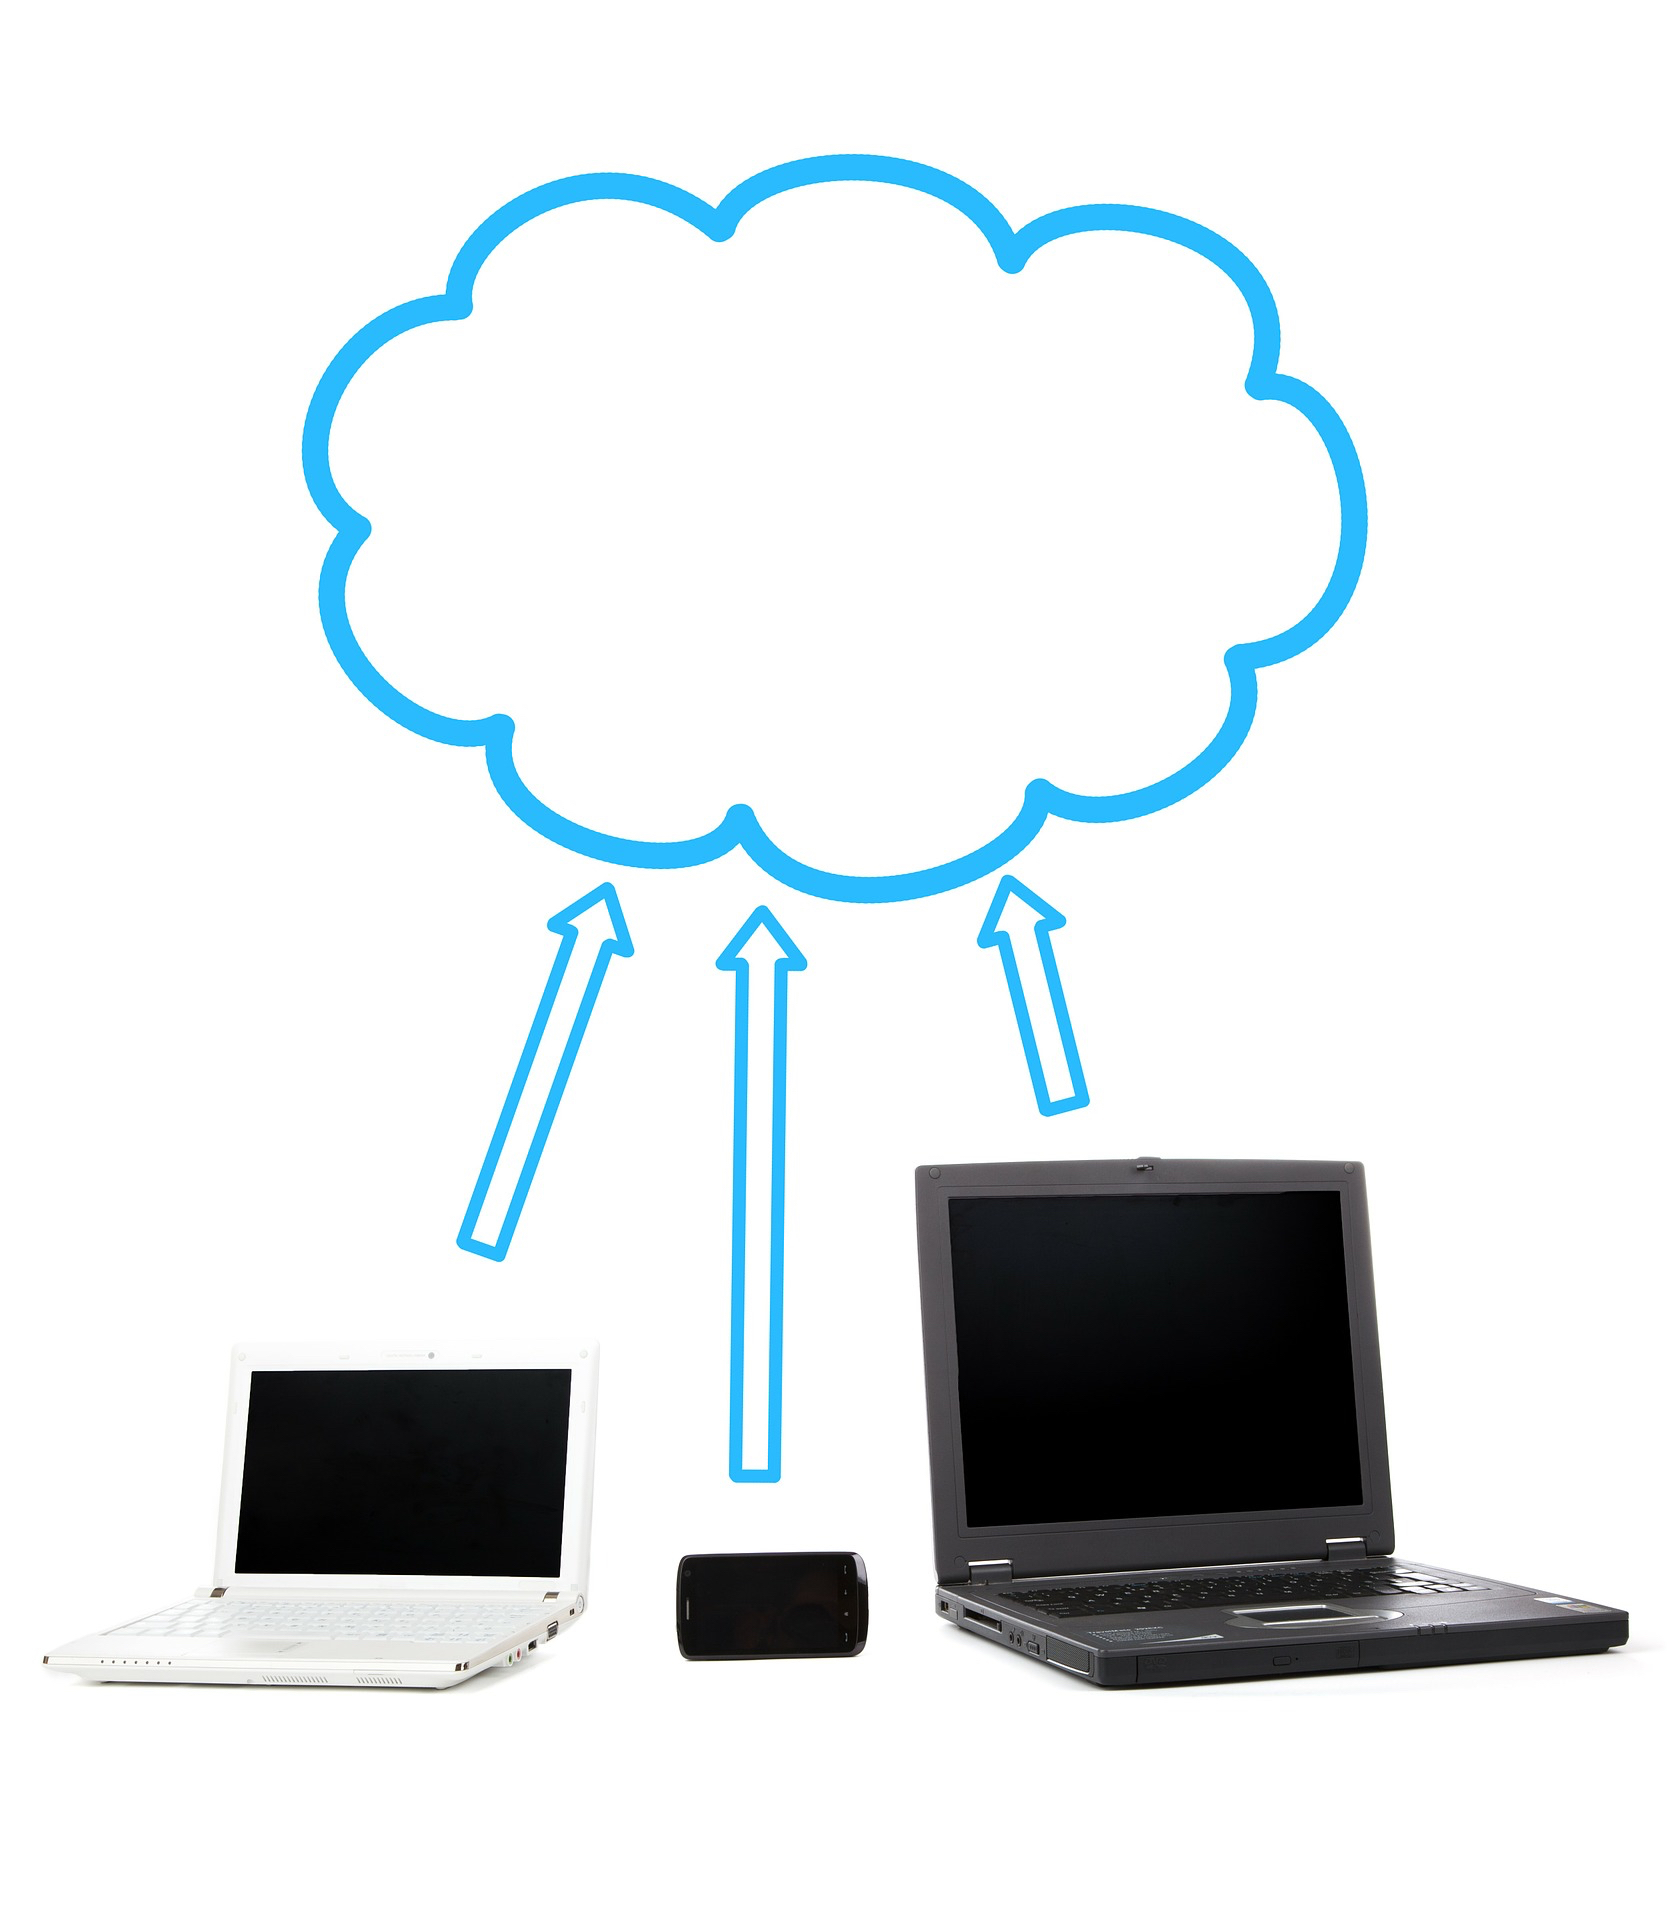 Guest post: 5 Ways Cloud Technology Can Help Optimise Your